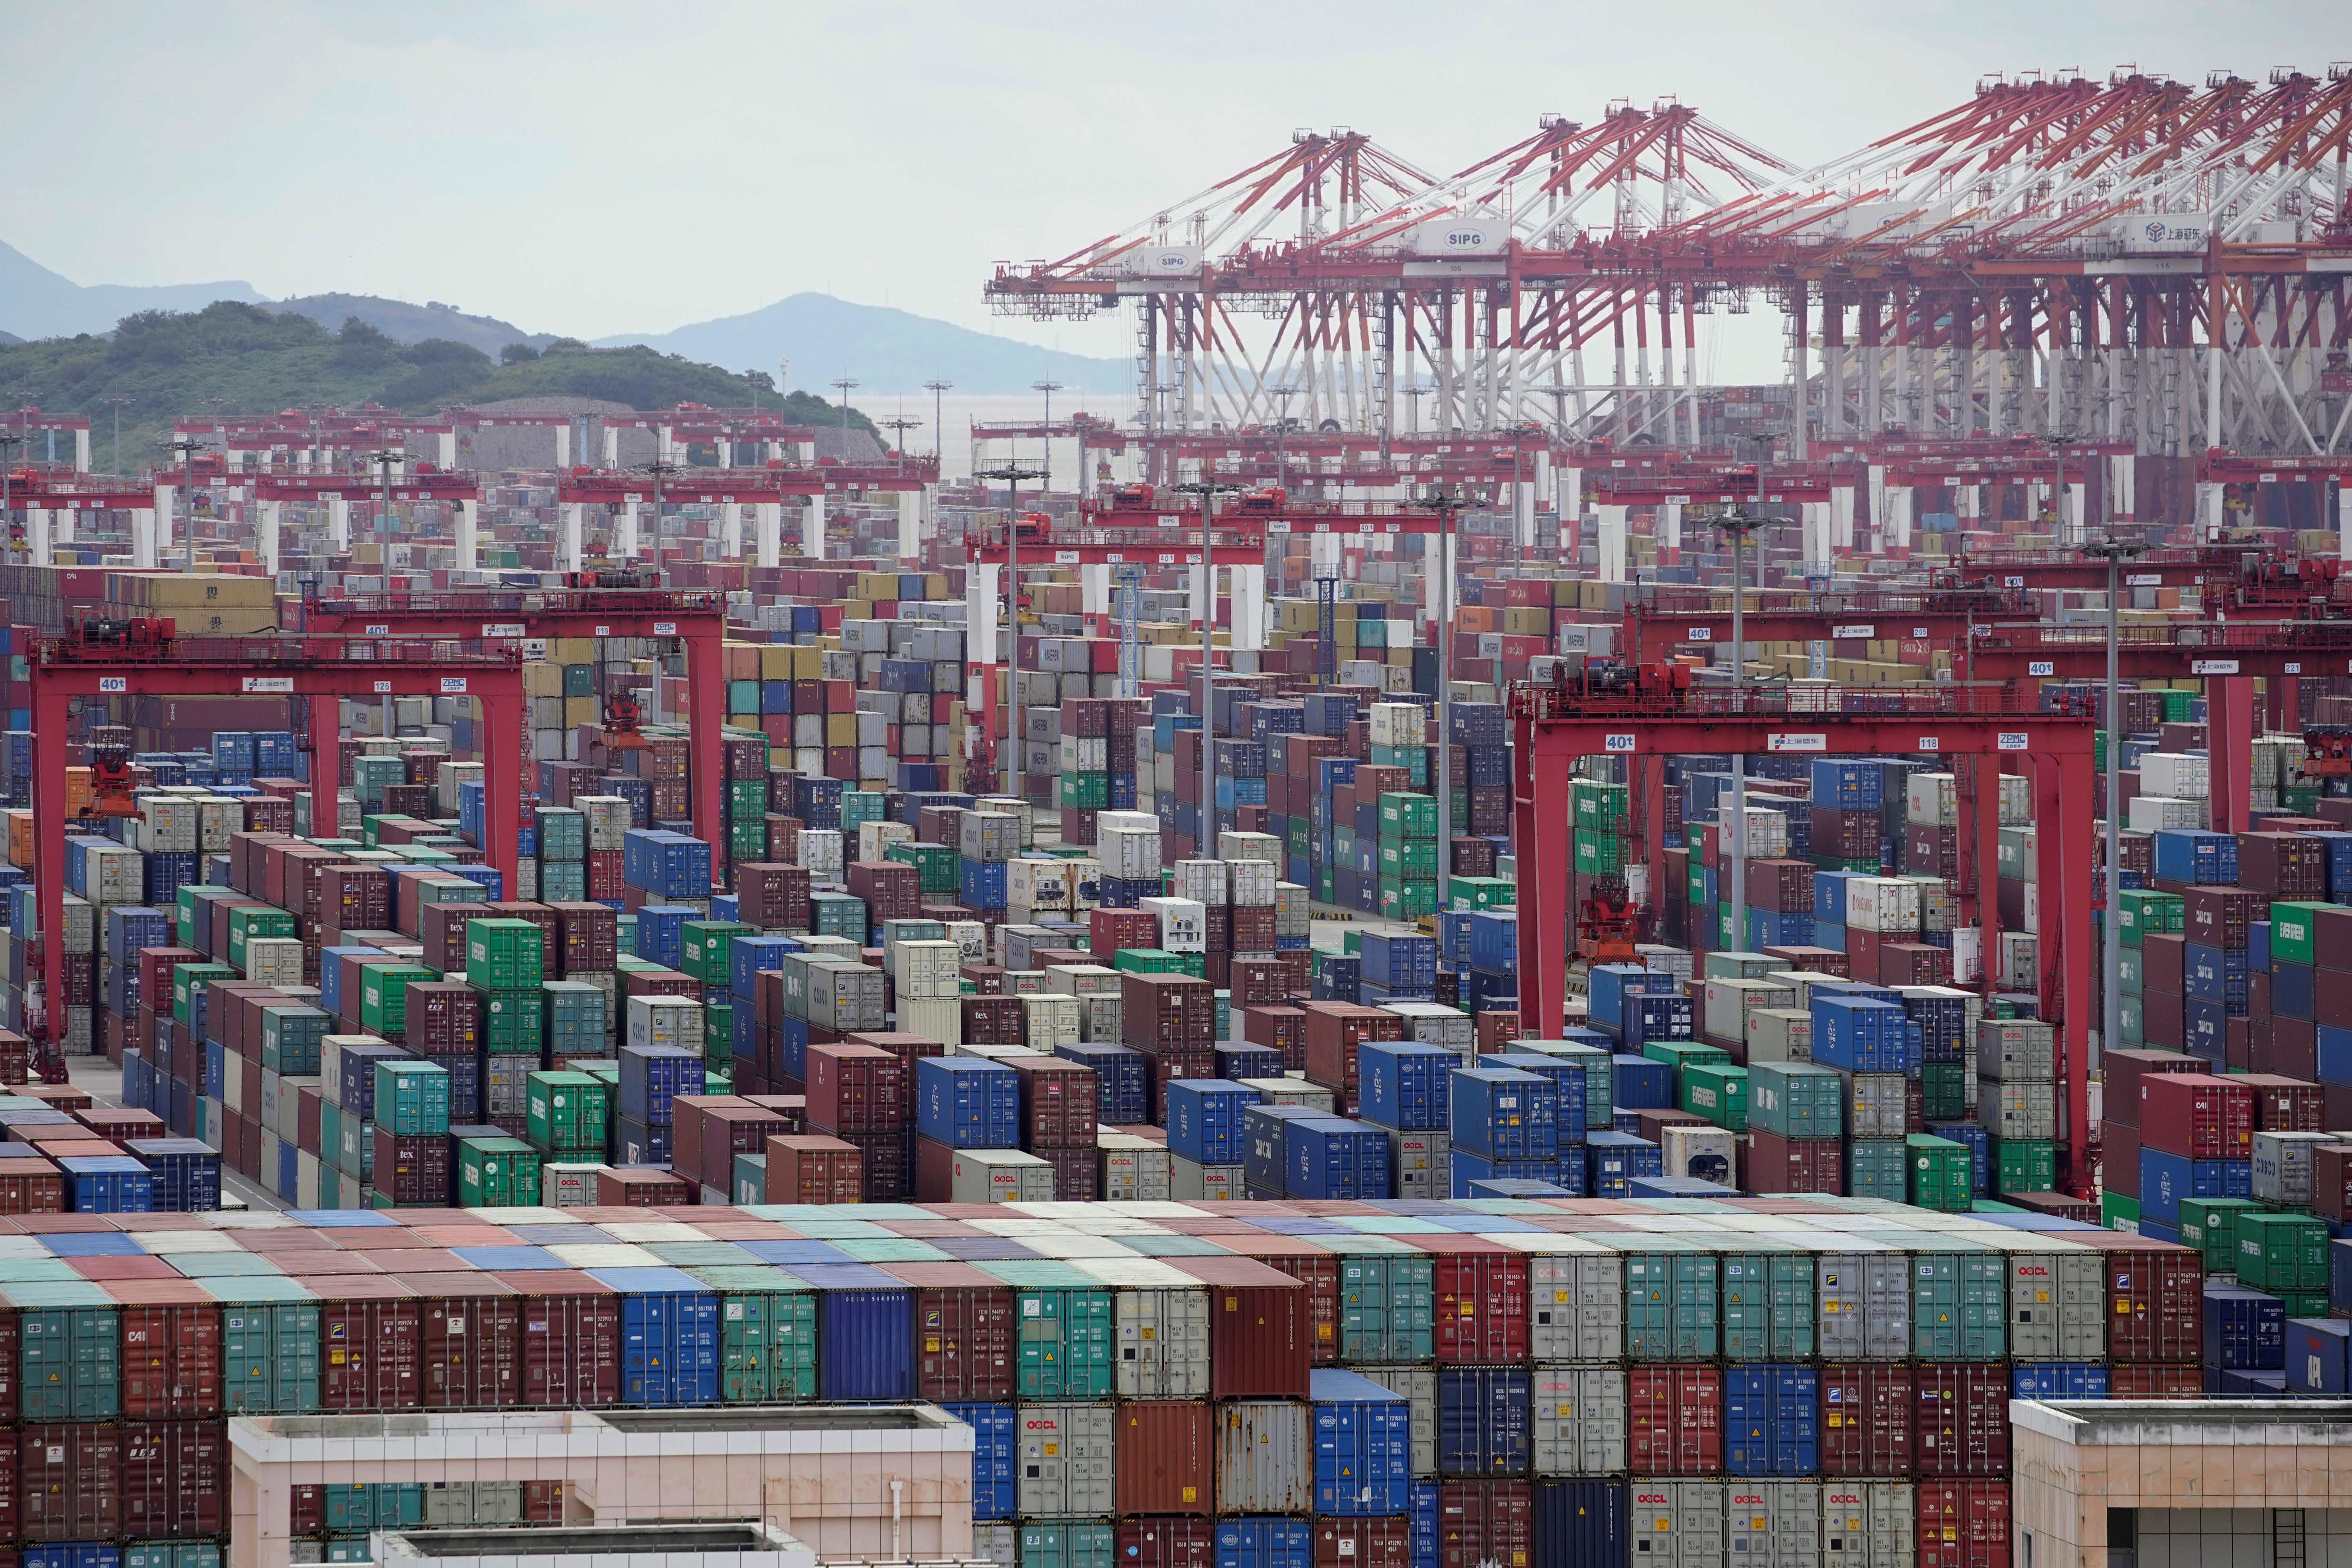 Containers are piled up at the Yangshan Deep-Water Port in Shanghai, China.